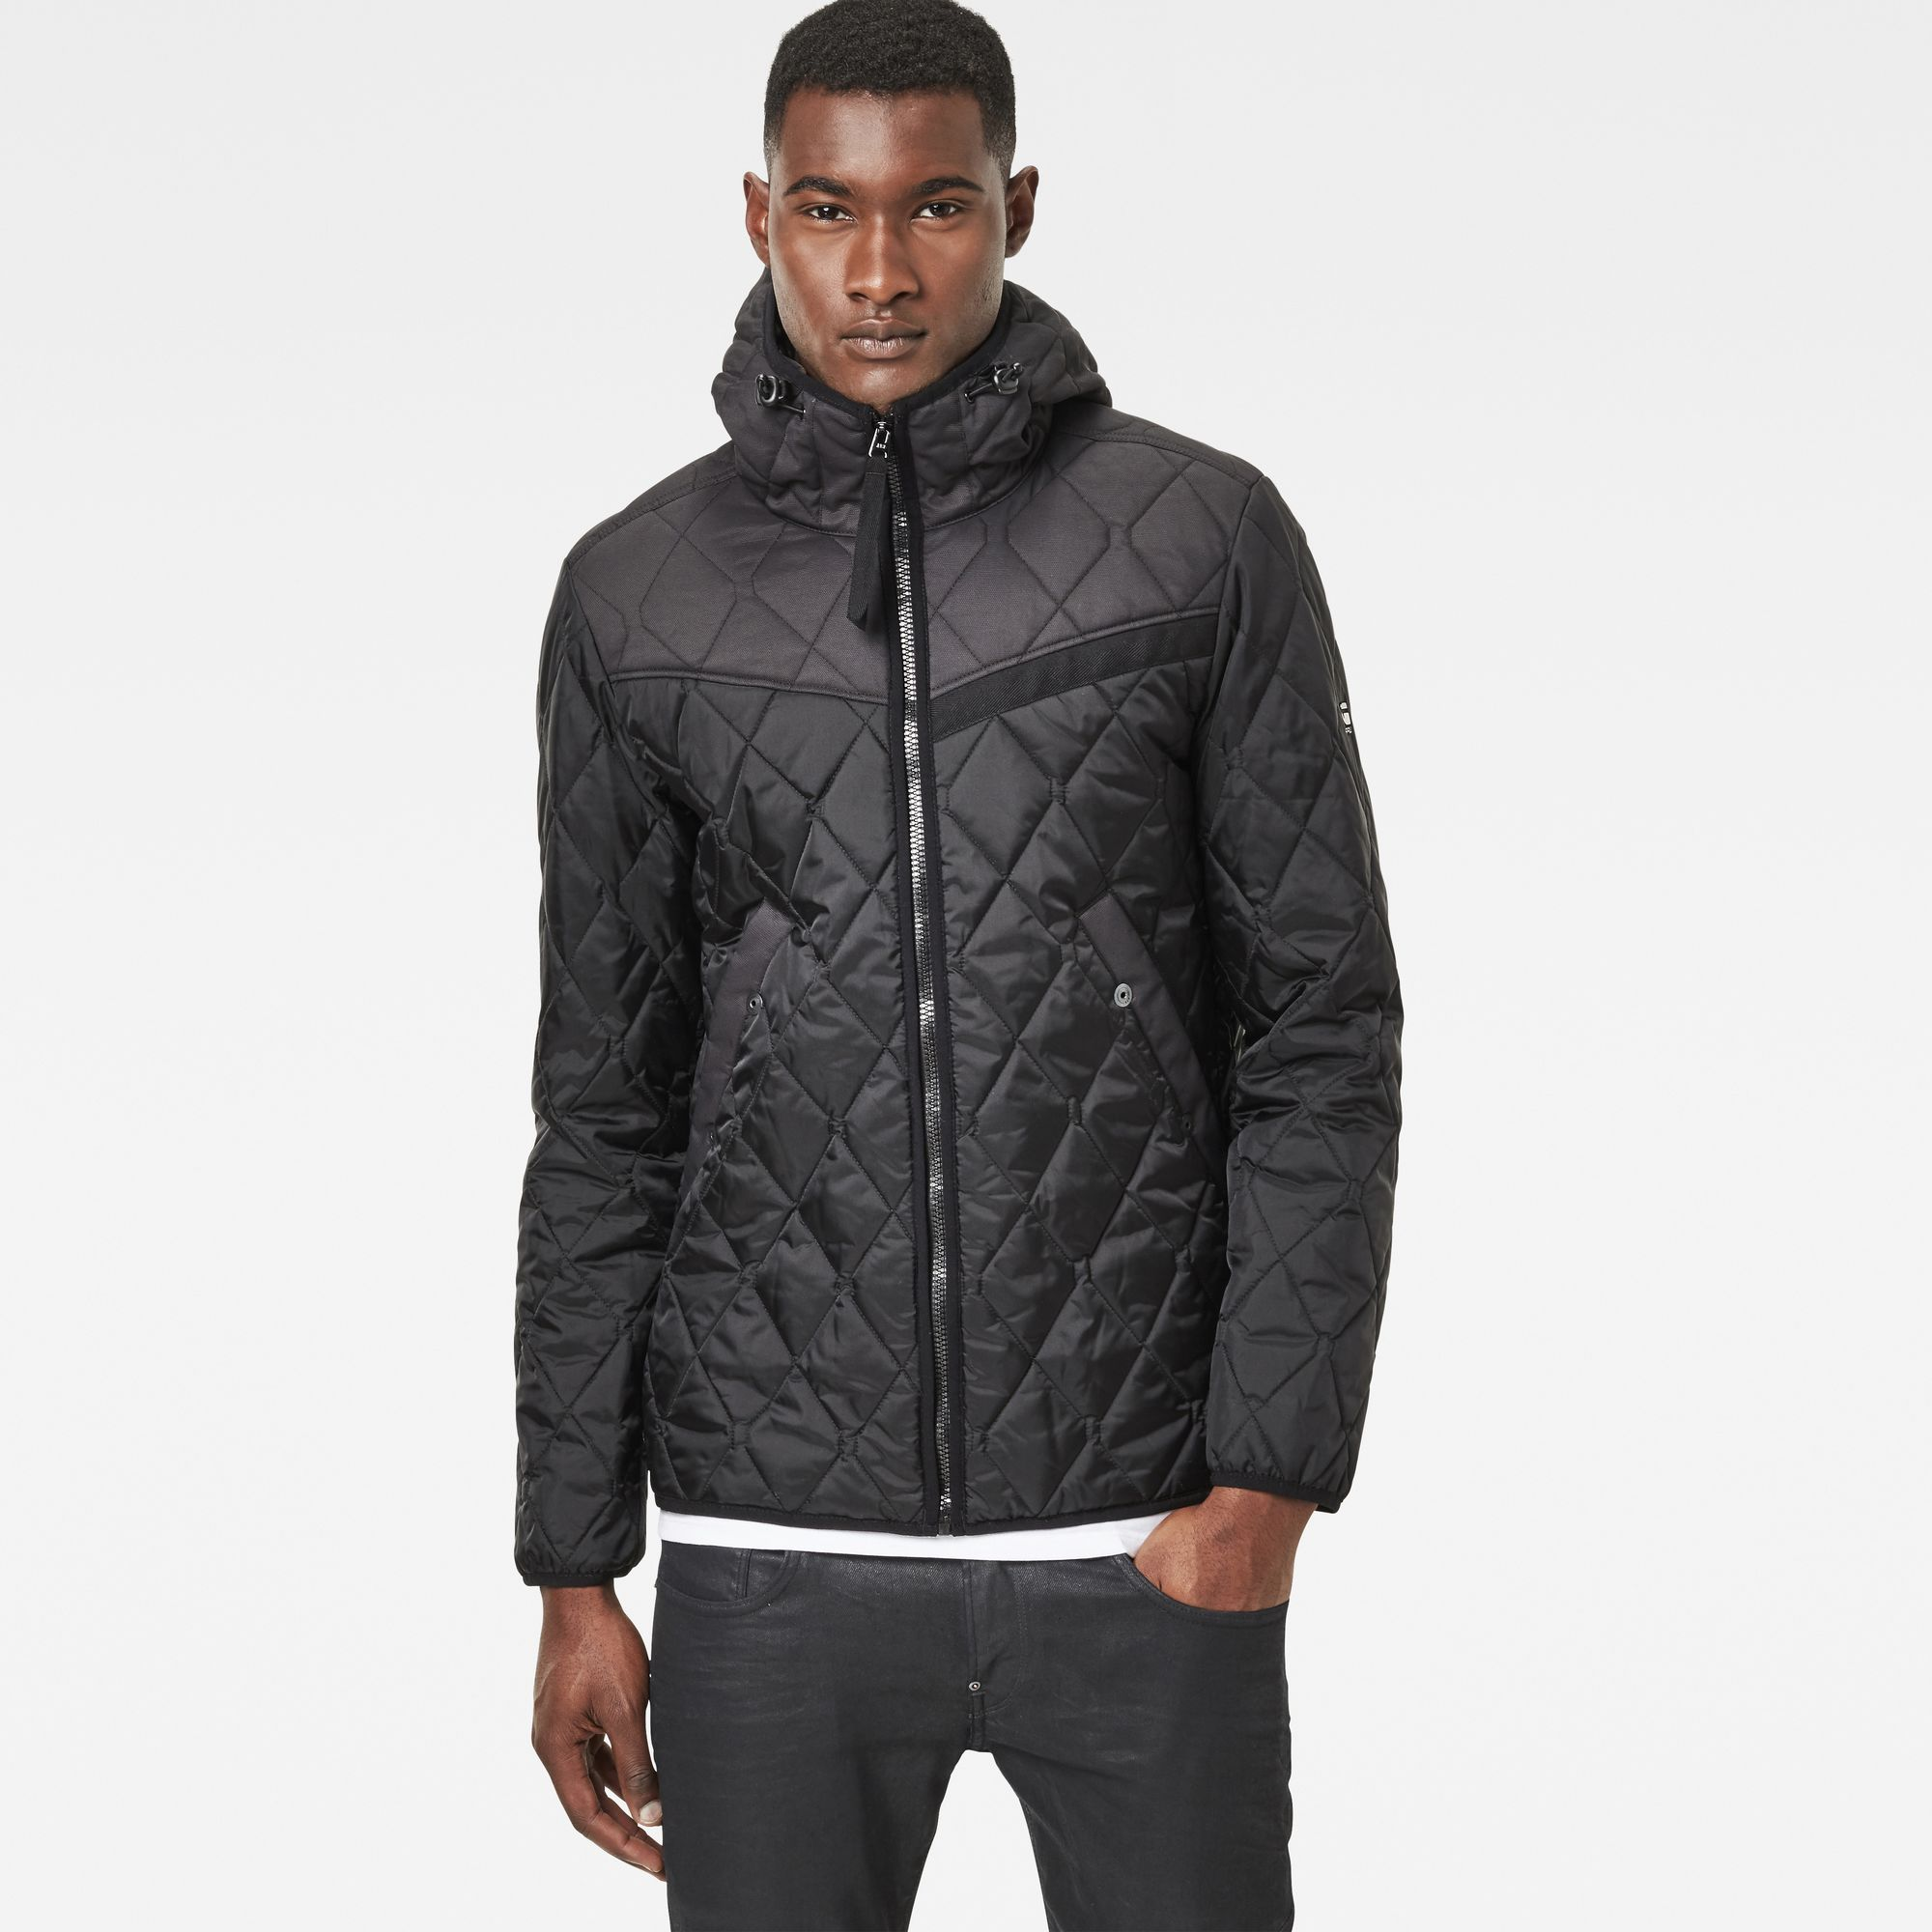 Attacc Quilted Hooded Overshirt G Star